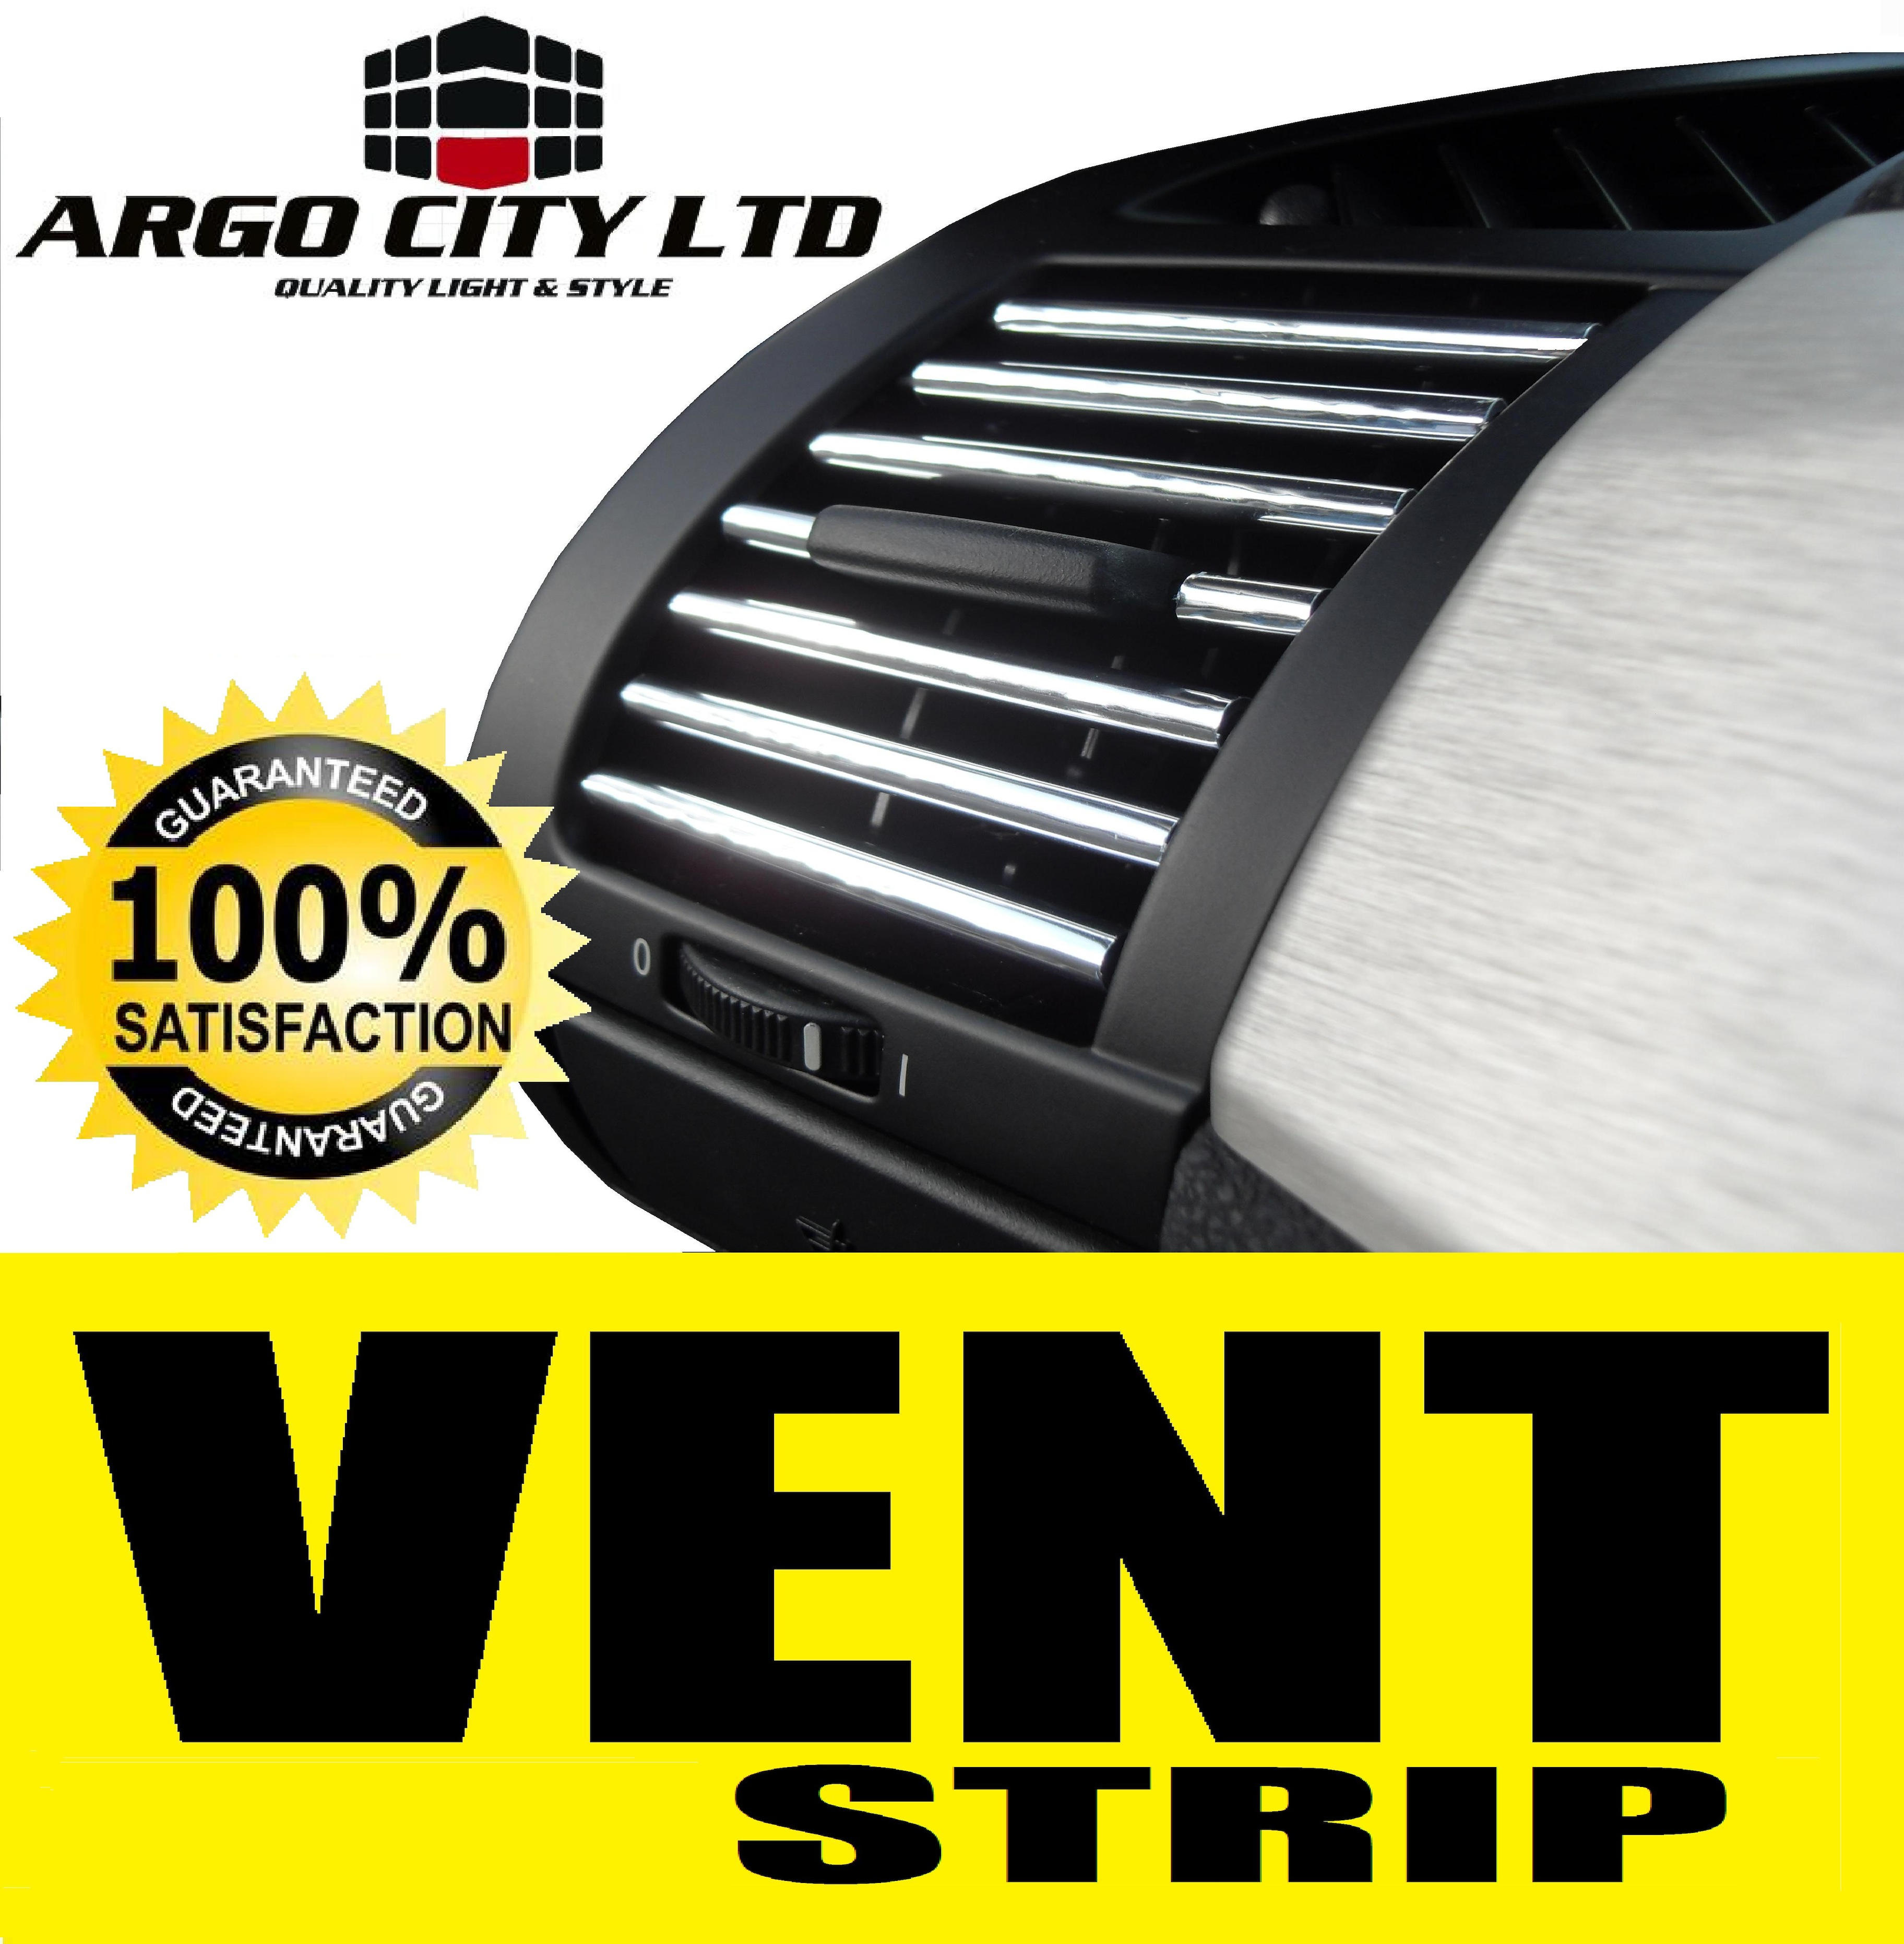 CHROME EFFECT AIR VENT STRIPS CHRYSLER 300C ESTATE